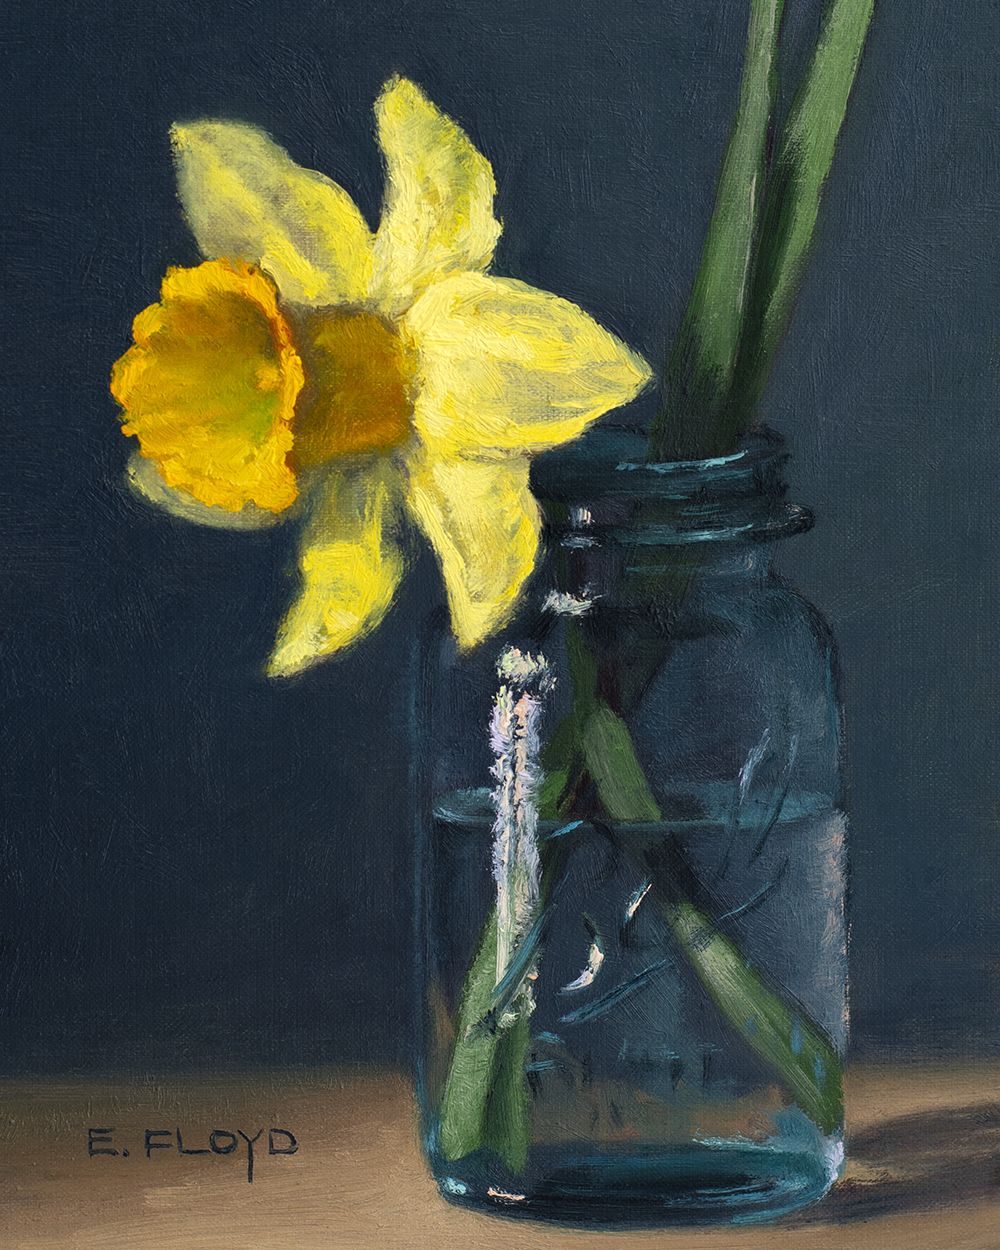 Daffodil in Ball Canning Jar, 8x6 inches, oil on panel, studio painting - framed, AVAILABLE, for more information contact@elizabethfloyd.com